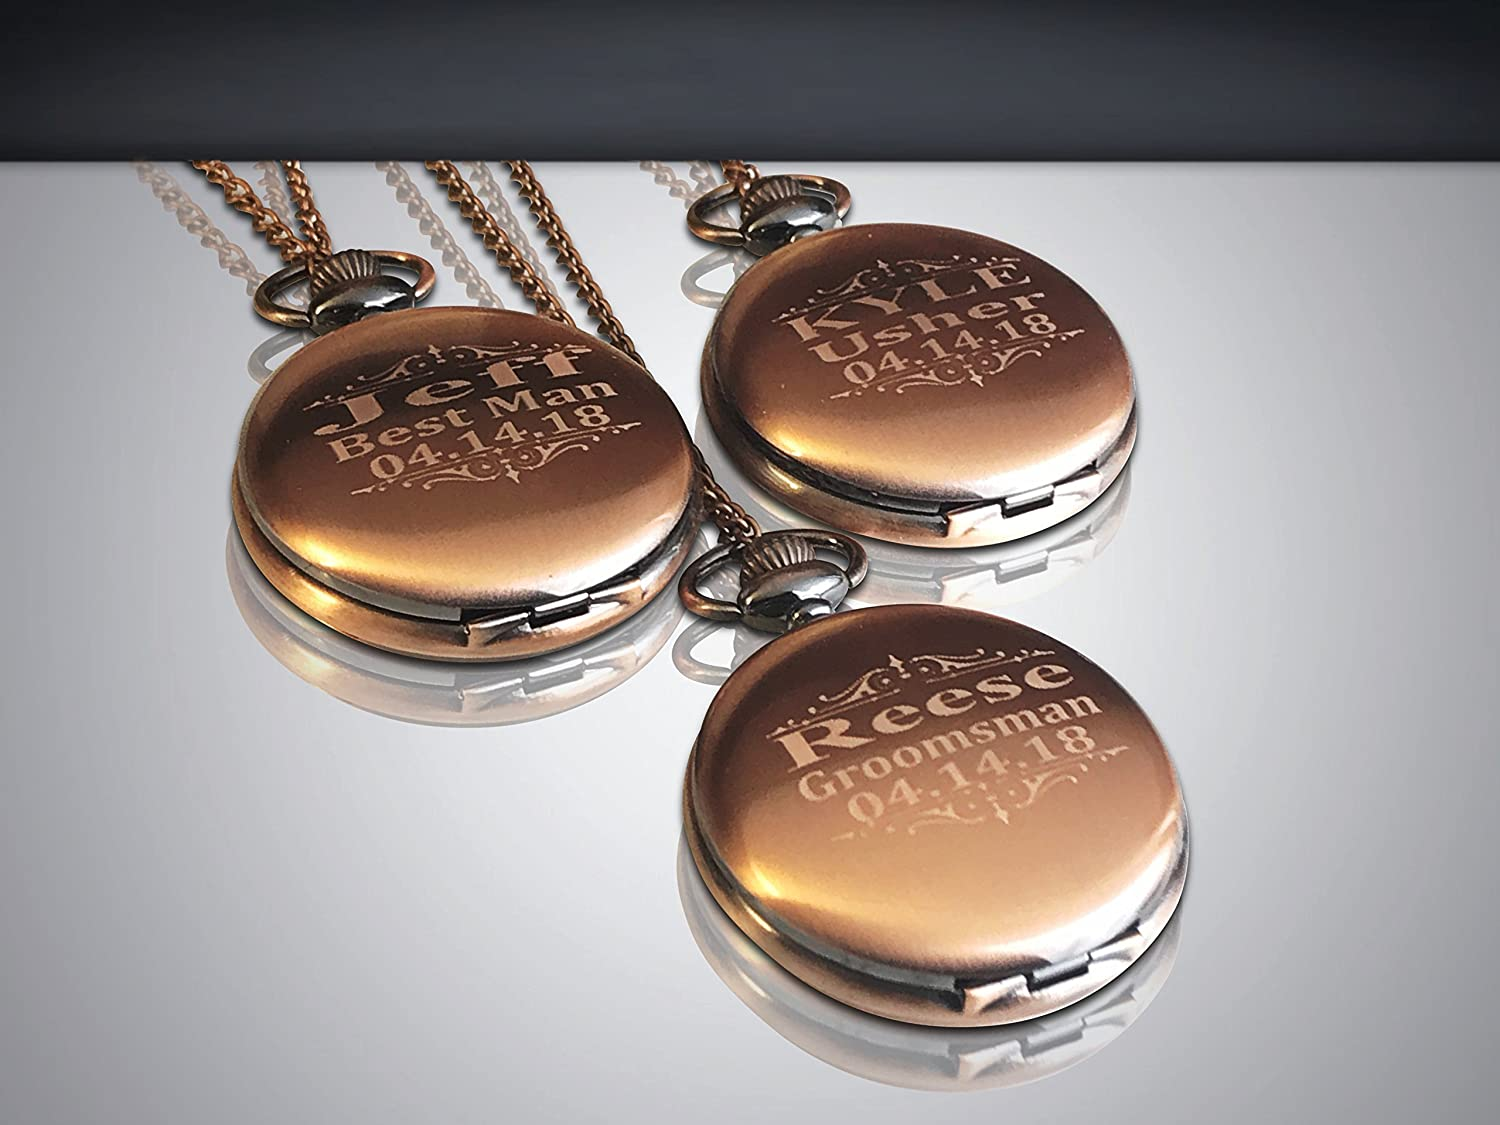 b663a8067 Amazon.com: 3 Pocket watches, Personalized Rose Gold Custom pocket watch  gift set of 3. Box included, Stainless chain and engraving is included.:  Handmade